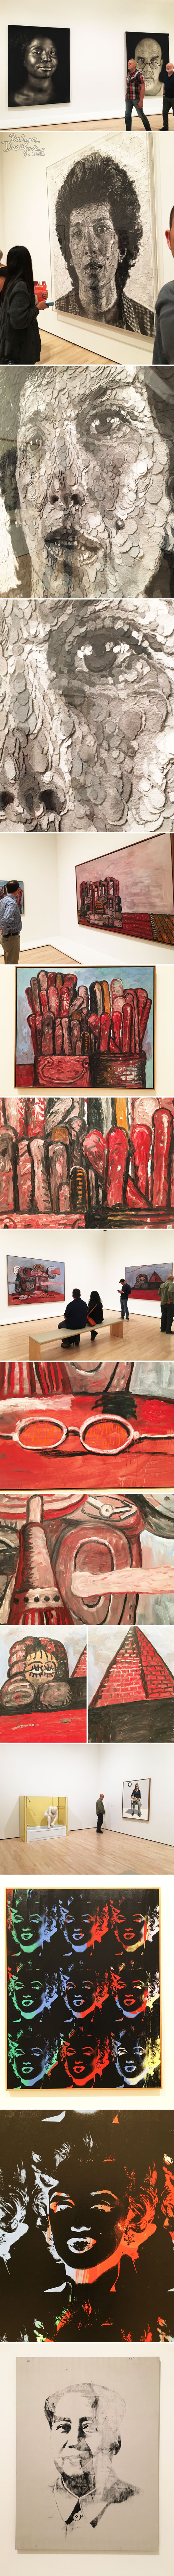 from the Balzer Designs Blog: San Francisco Museum of Modern Art #sfmoma